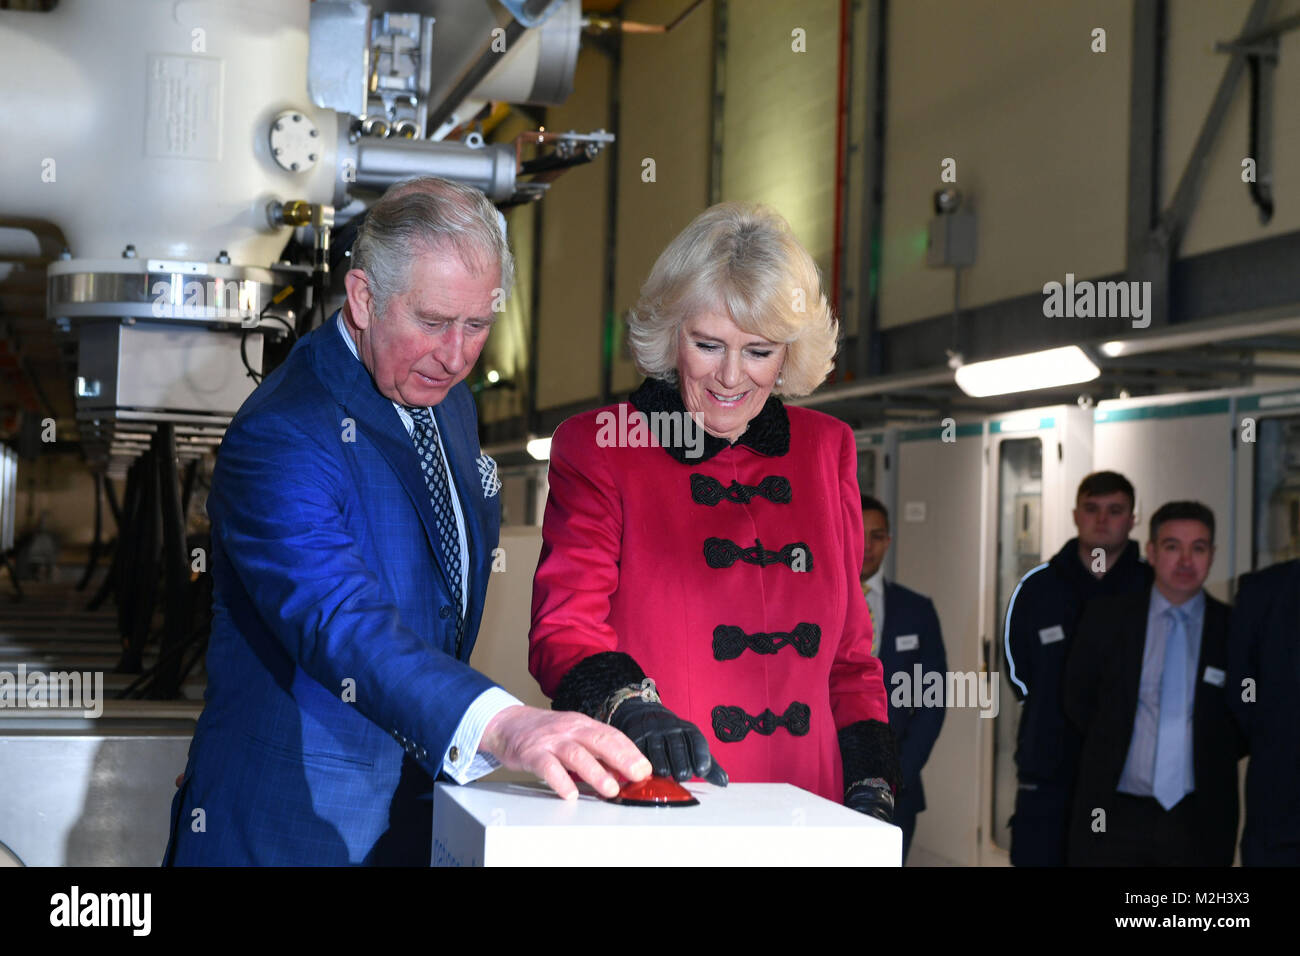 The Prince of Wales and Duchess of Cornwall press the start button during the official opening The National Grid's - Stock Image